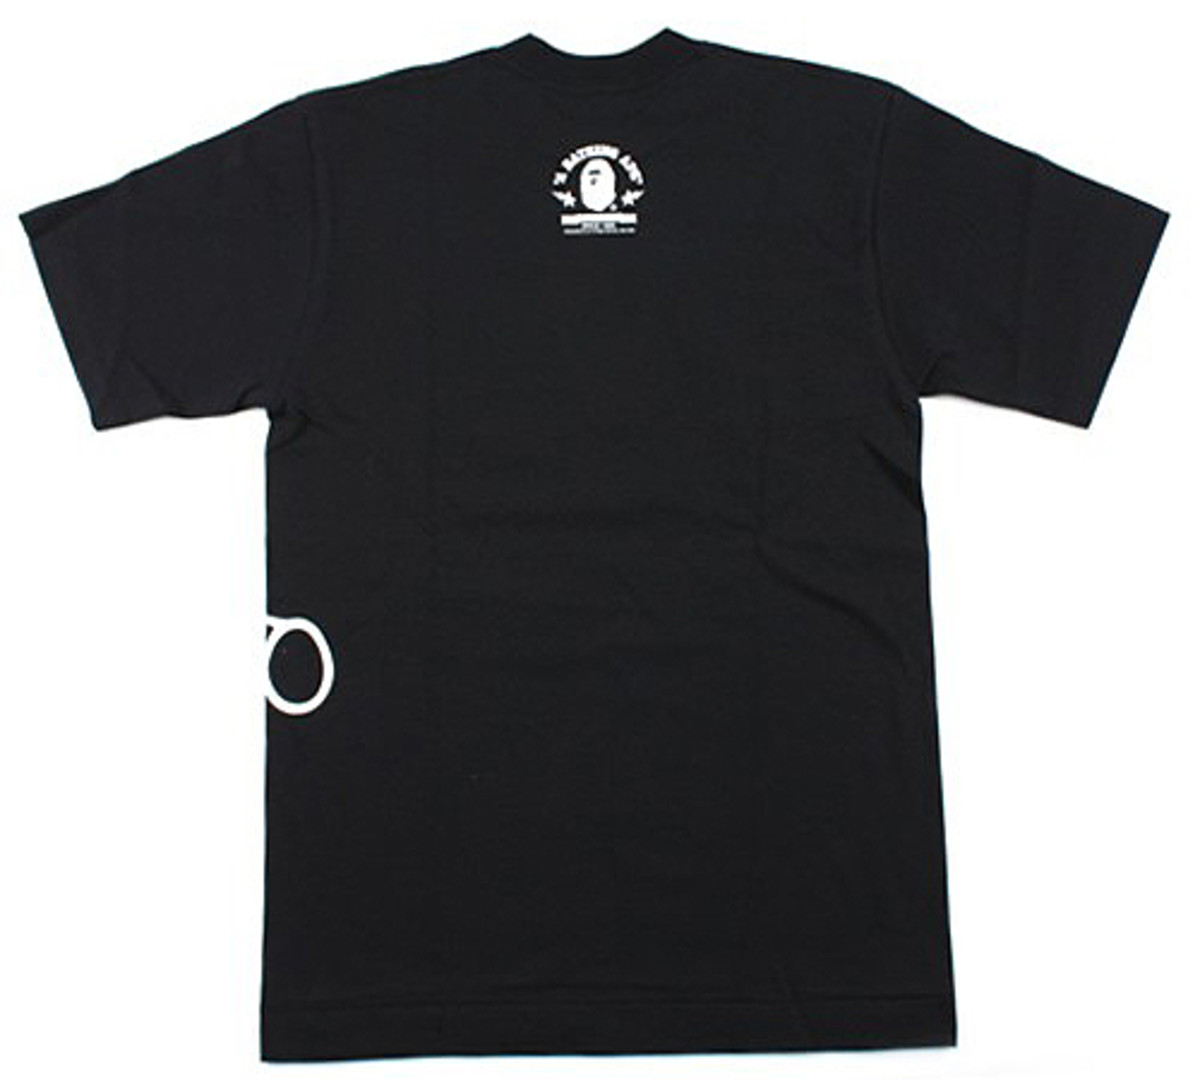 A Bathing Ape (BAPE)  BAPE - Baby Milo Graffiti T-Shirt - Black 02